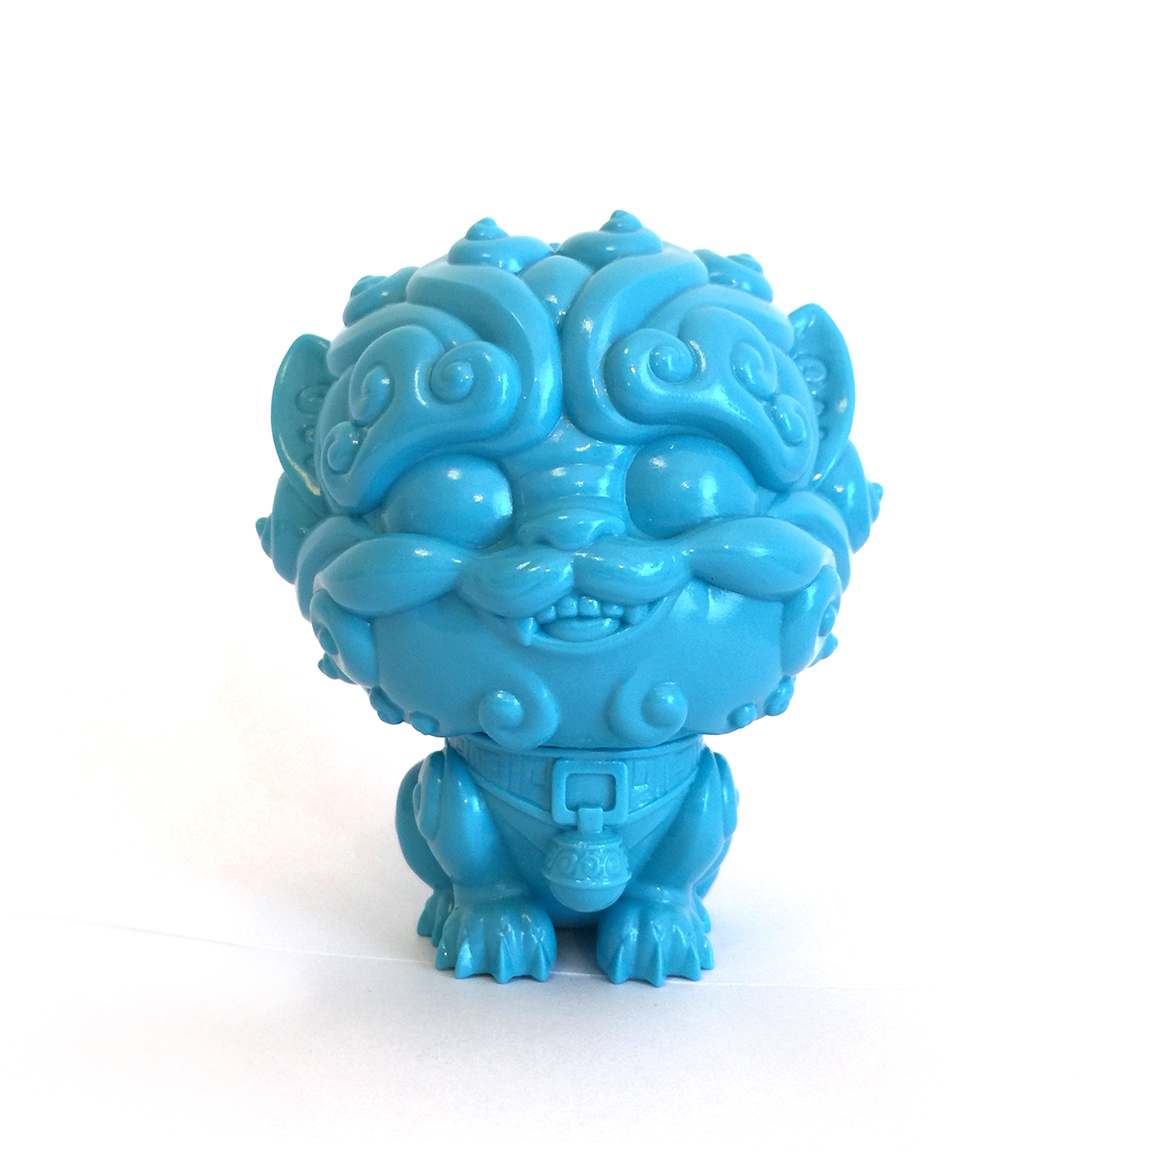 Tenacious Blue: SOLD OUT